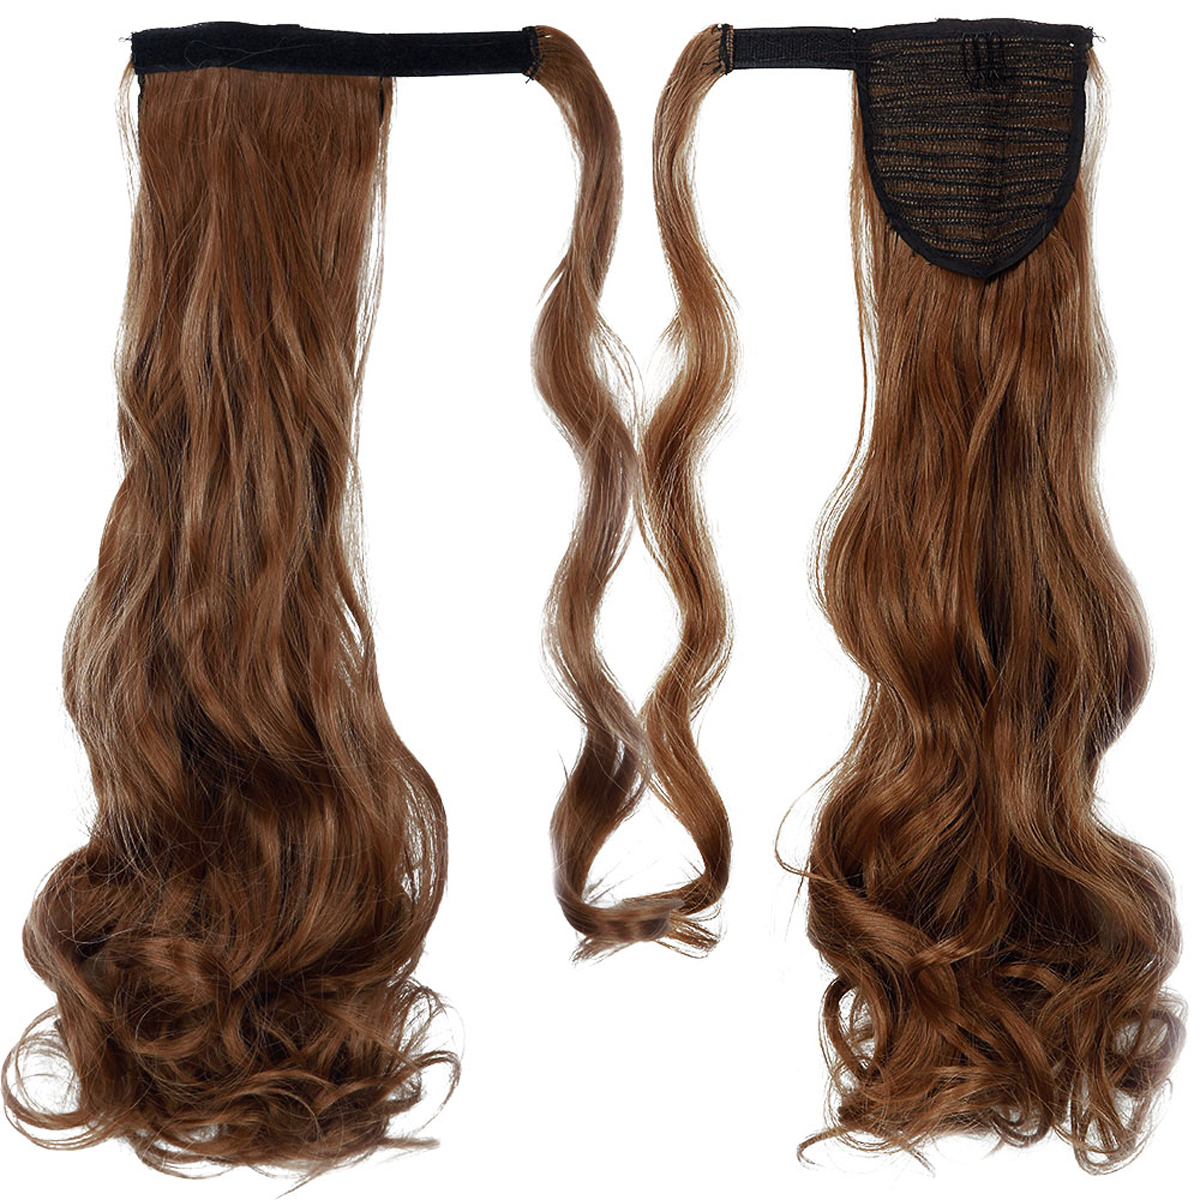 """FLORATA 18"""" Long Curly Velcro Wrap Around Ponytail Hair Extensions"""